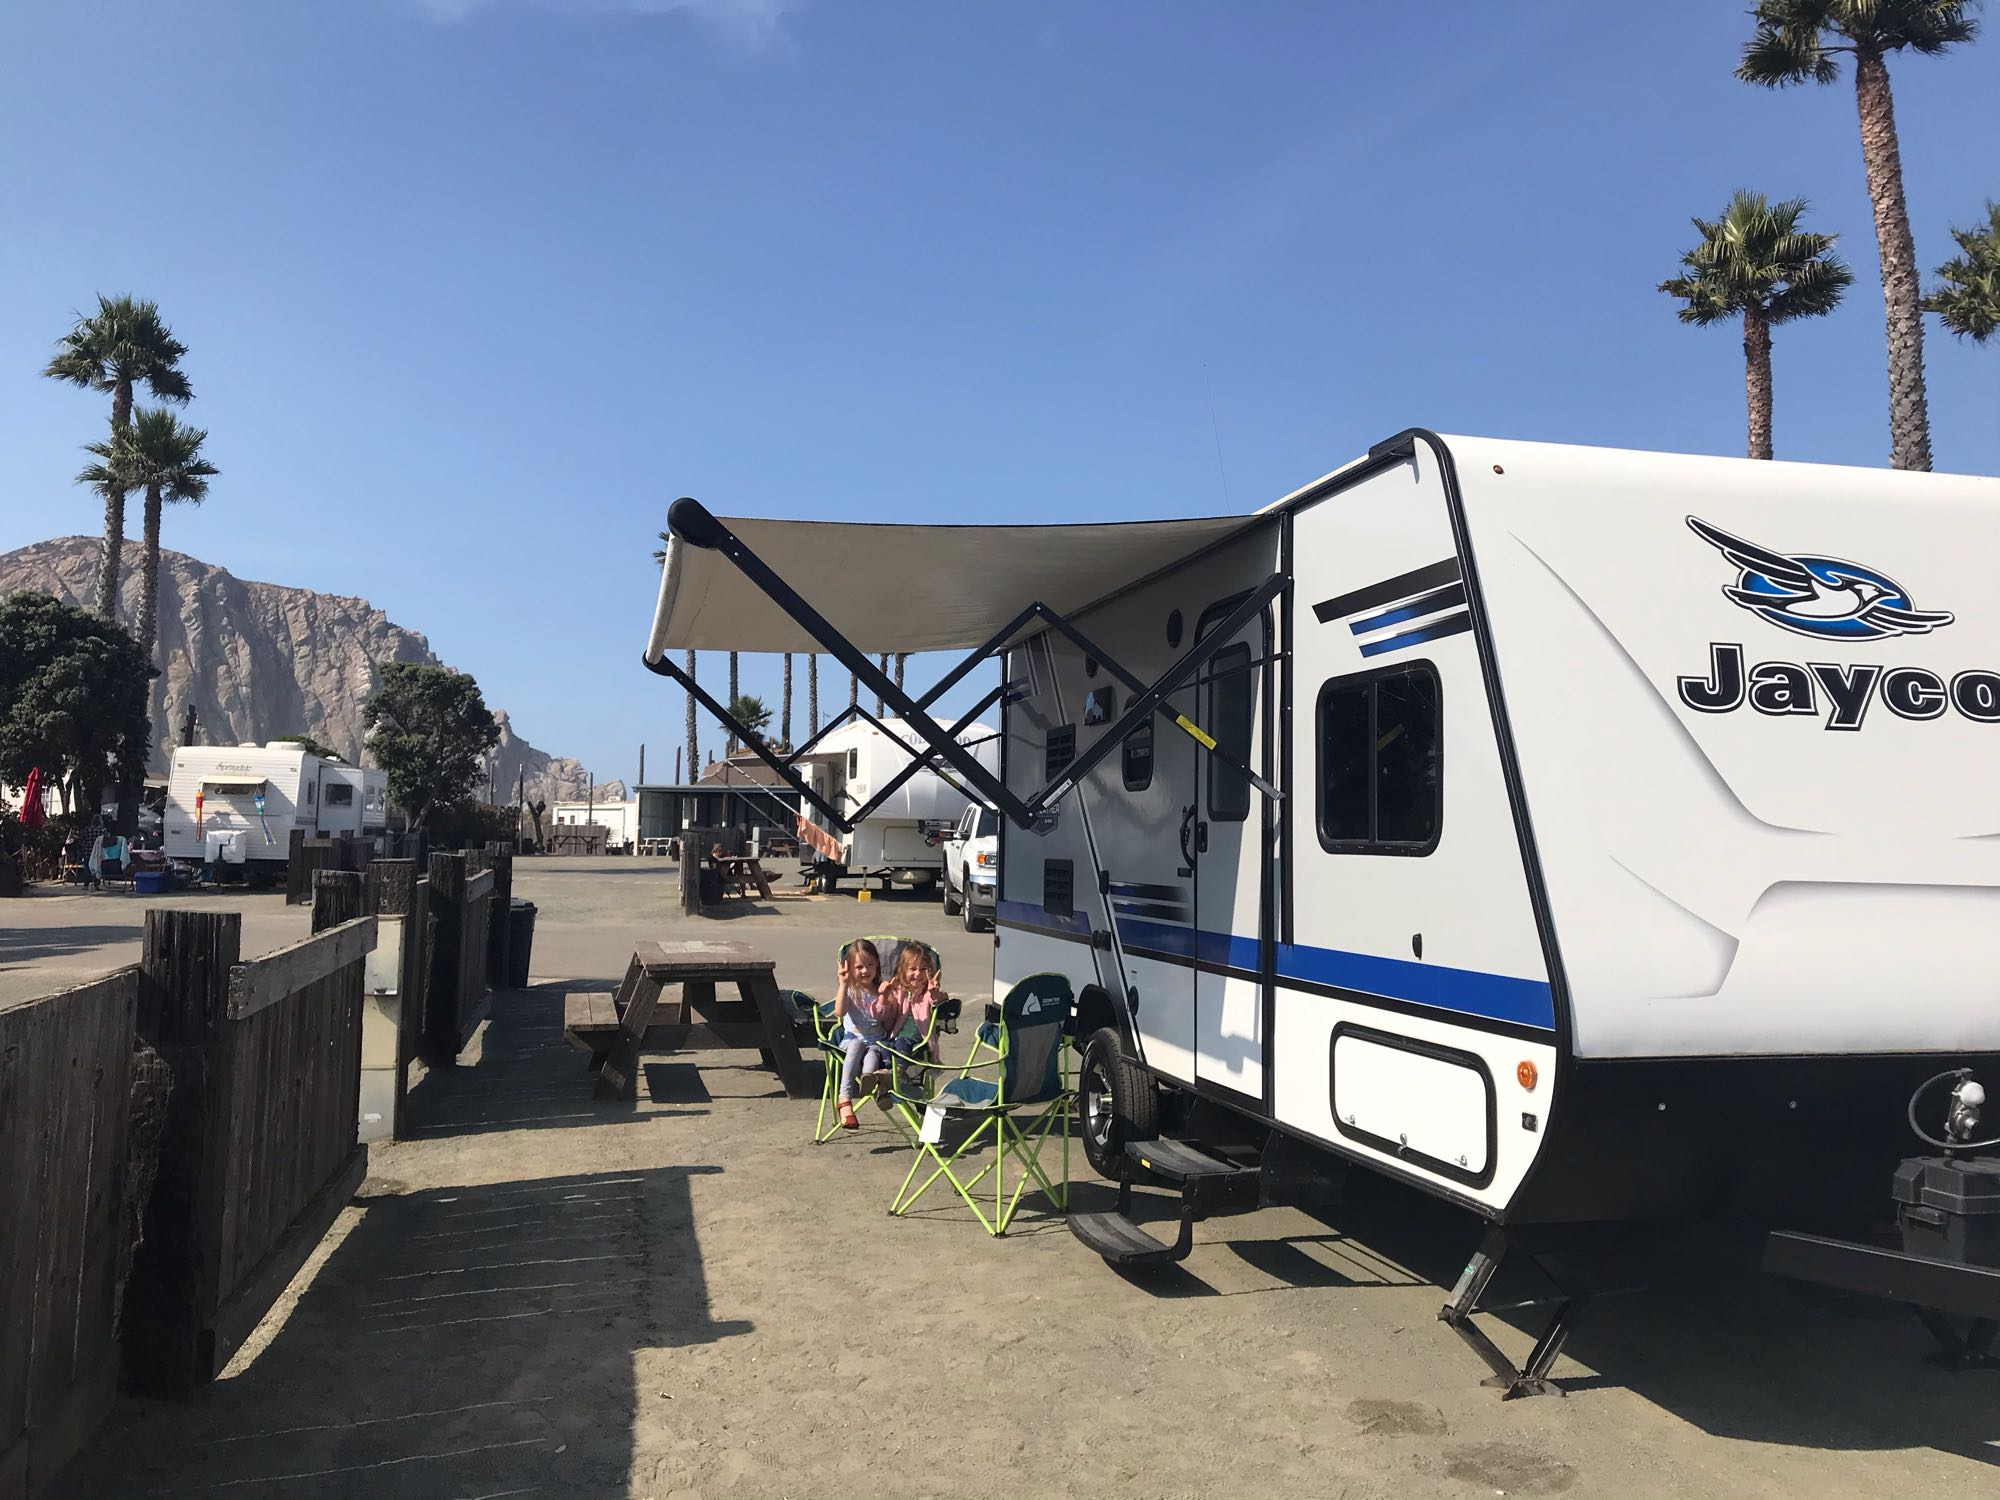 Morro Dunes Rv Park (Morro Bay). Jayco Jay Feather 2018